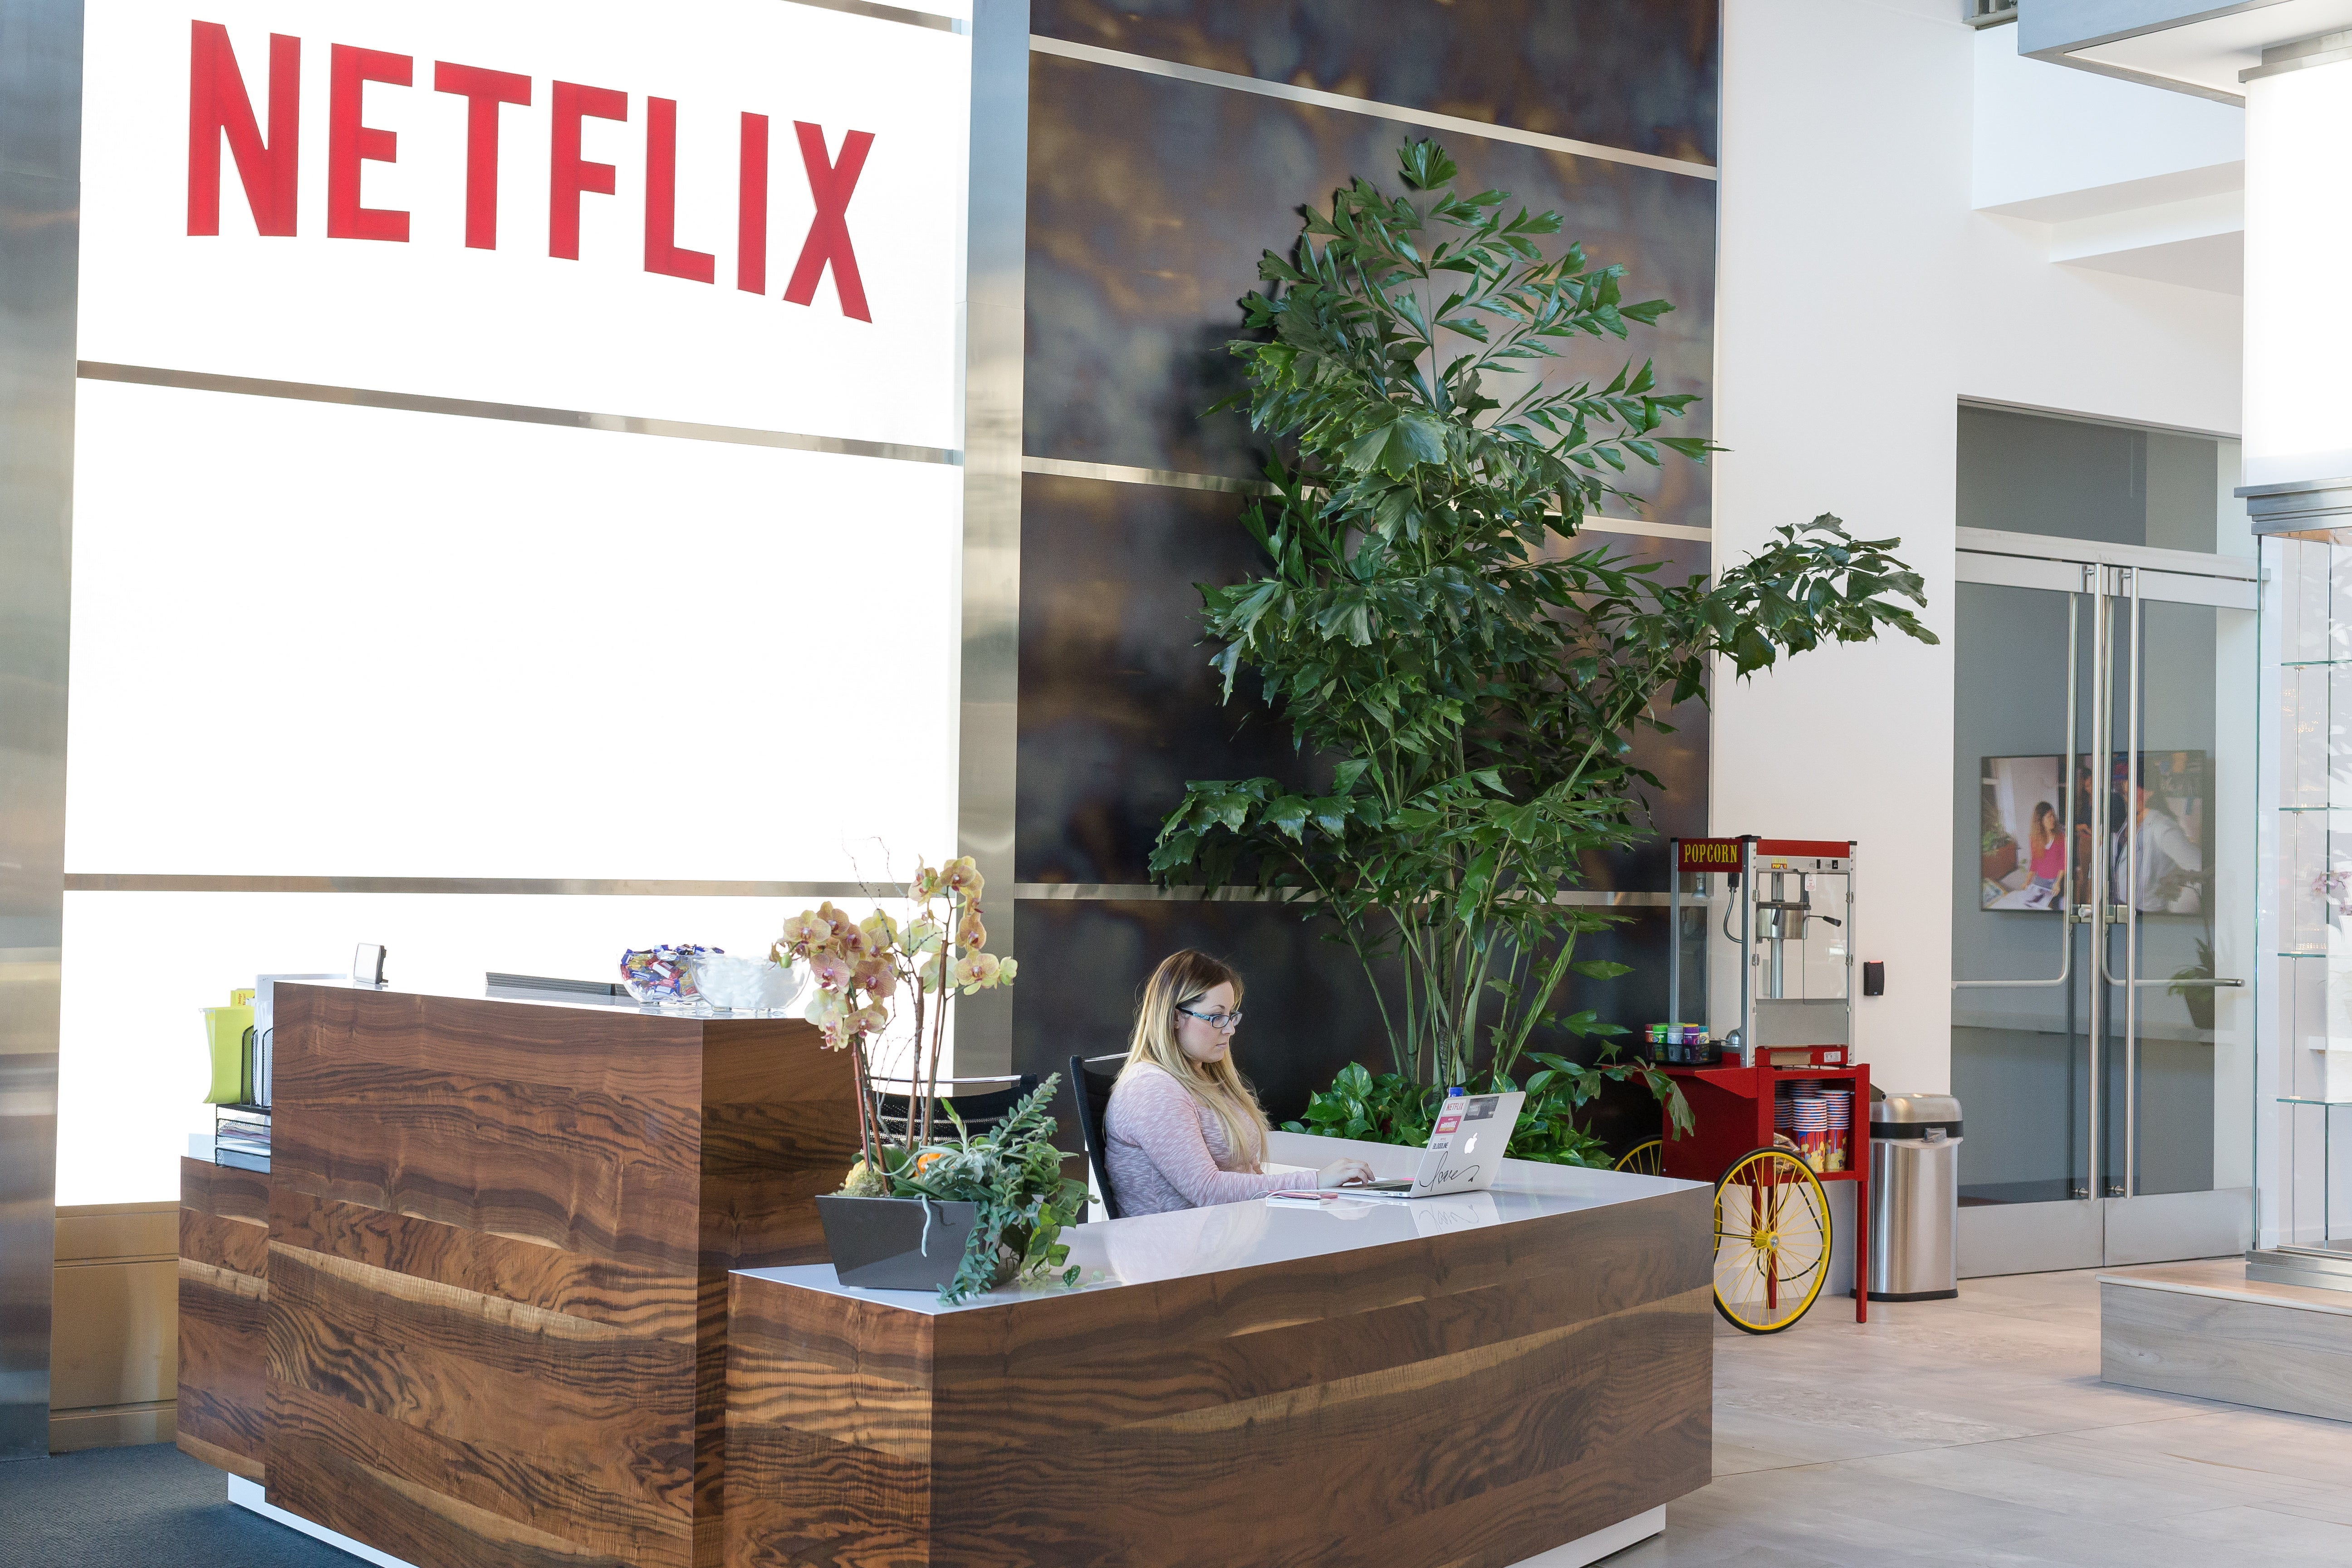 A receptionist sitting at a desk in the Netflix headquarters.